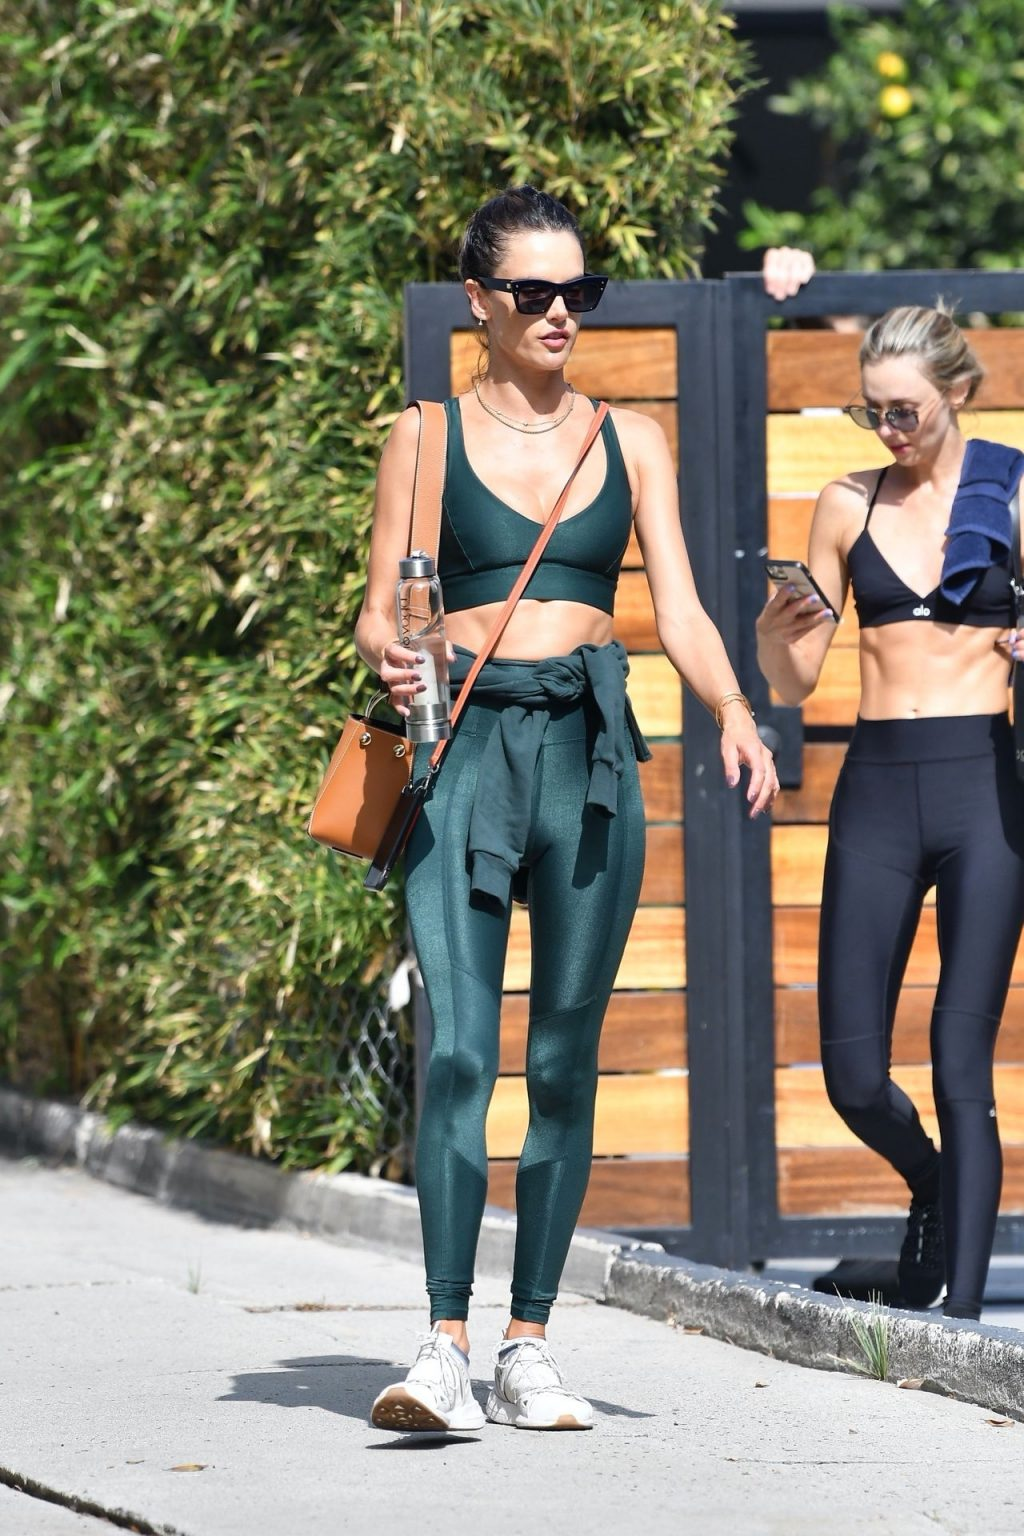 Alessandra Ambrosio Wraps Up Another Workout Session (71 Photos)